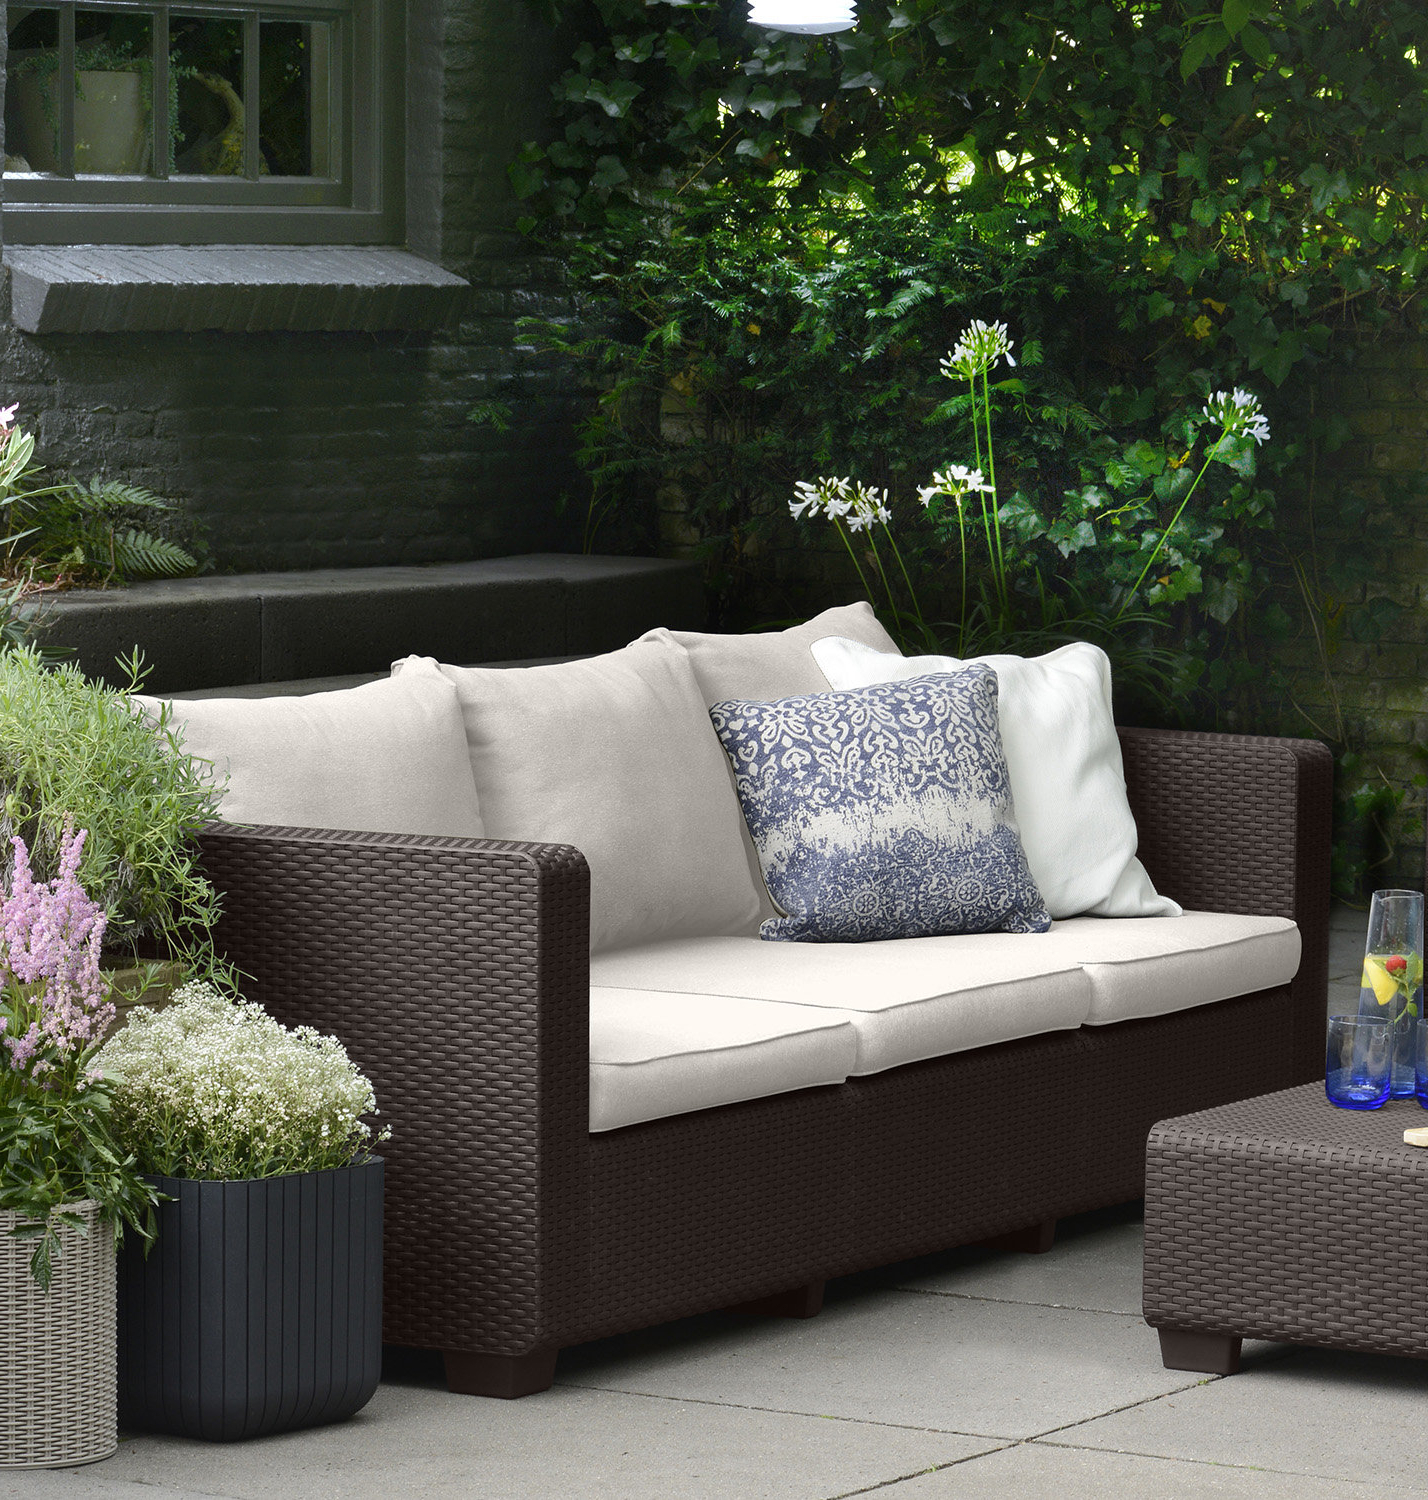 Fashionable Halloran Patio Sofa With Sunbrella Cushions Throughout Rowley Patio Sofas Set With Cushions (View 2 of 20)